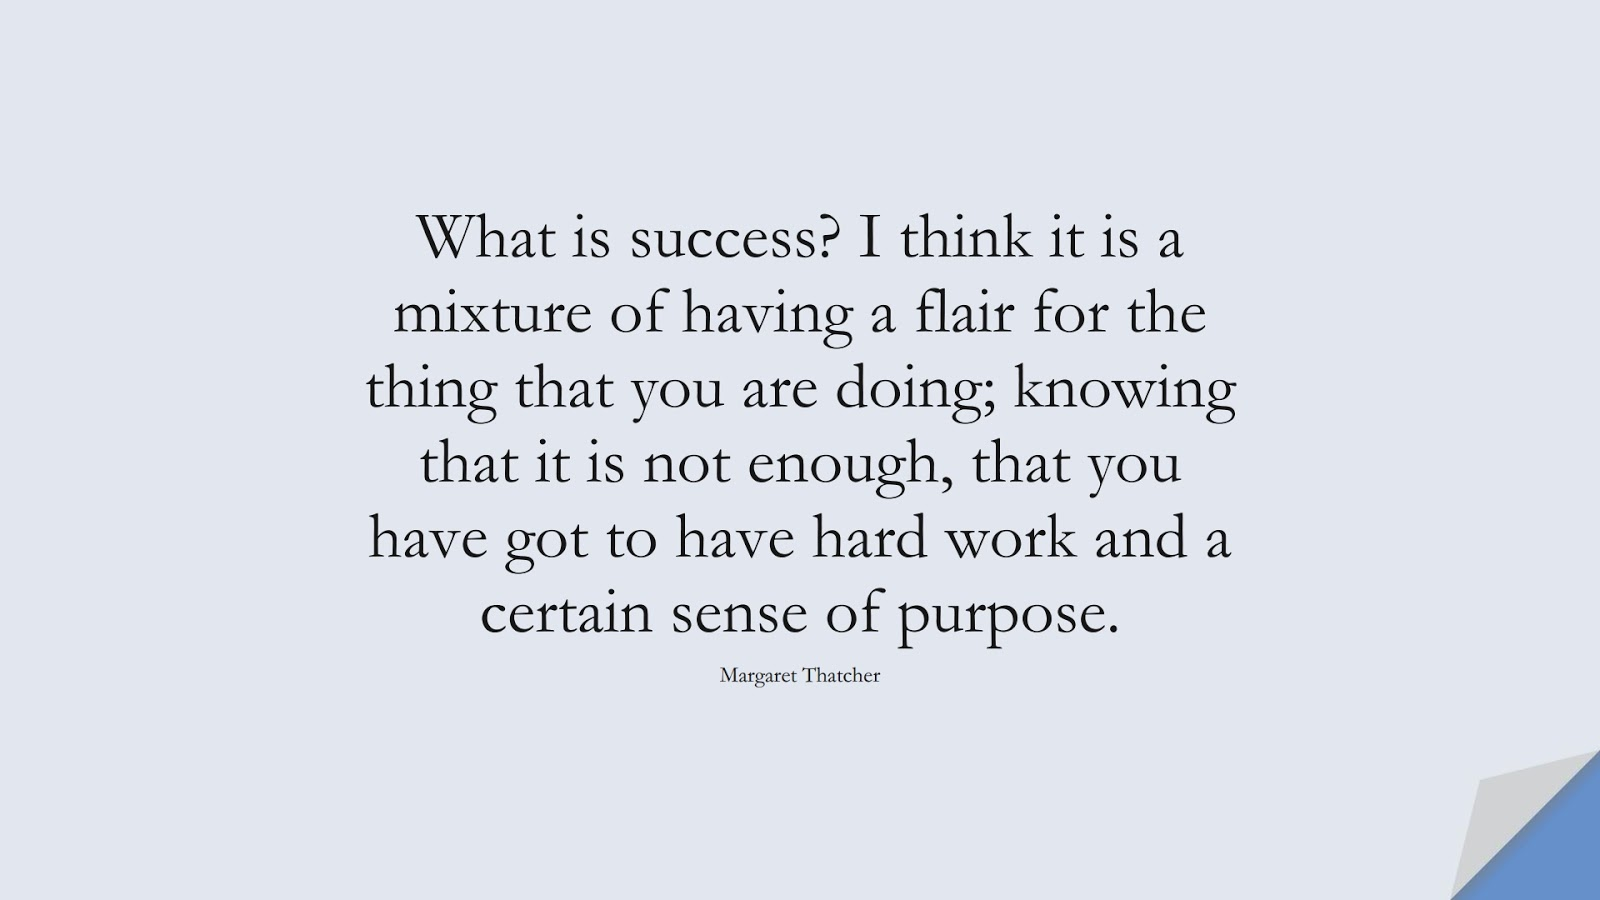 What is success? I think it is a mixture of having a flair for the thing that you are doing; knowing that it is not enough, that you have got to have hard work and a certain sense of purpose. (Margaret Thatcher);  #SuccessQuotes